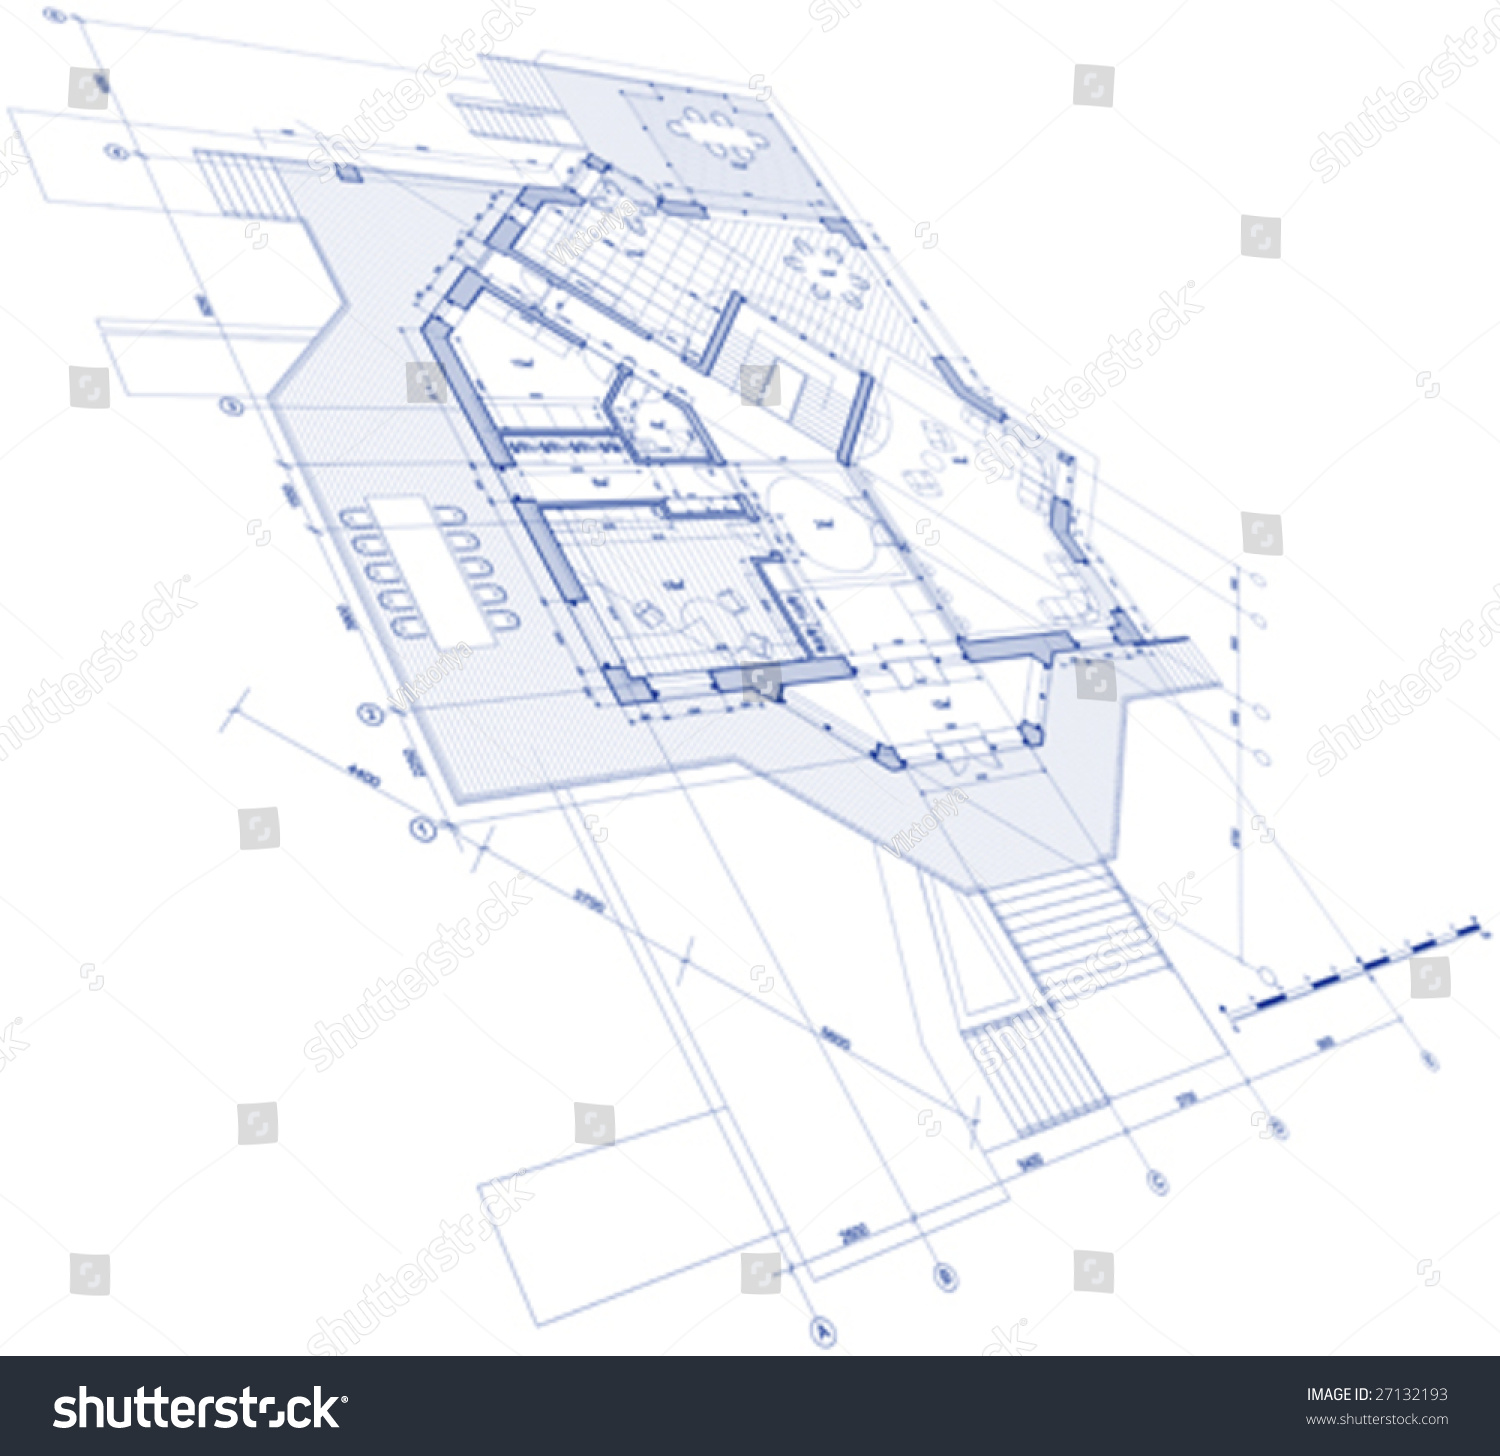 Architecture blueprint abstract house plan vector stock vector architecture blueprint abstract house plan vector background malvernweather Gallery